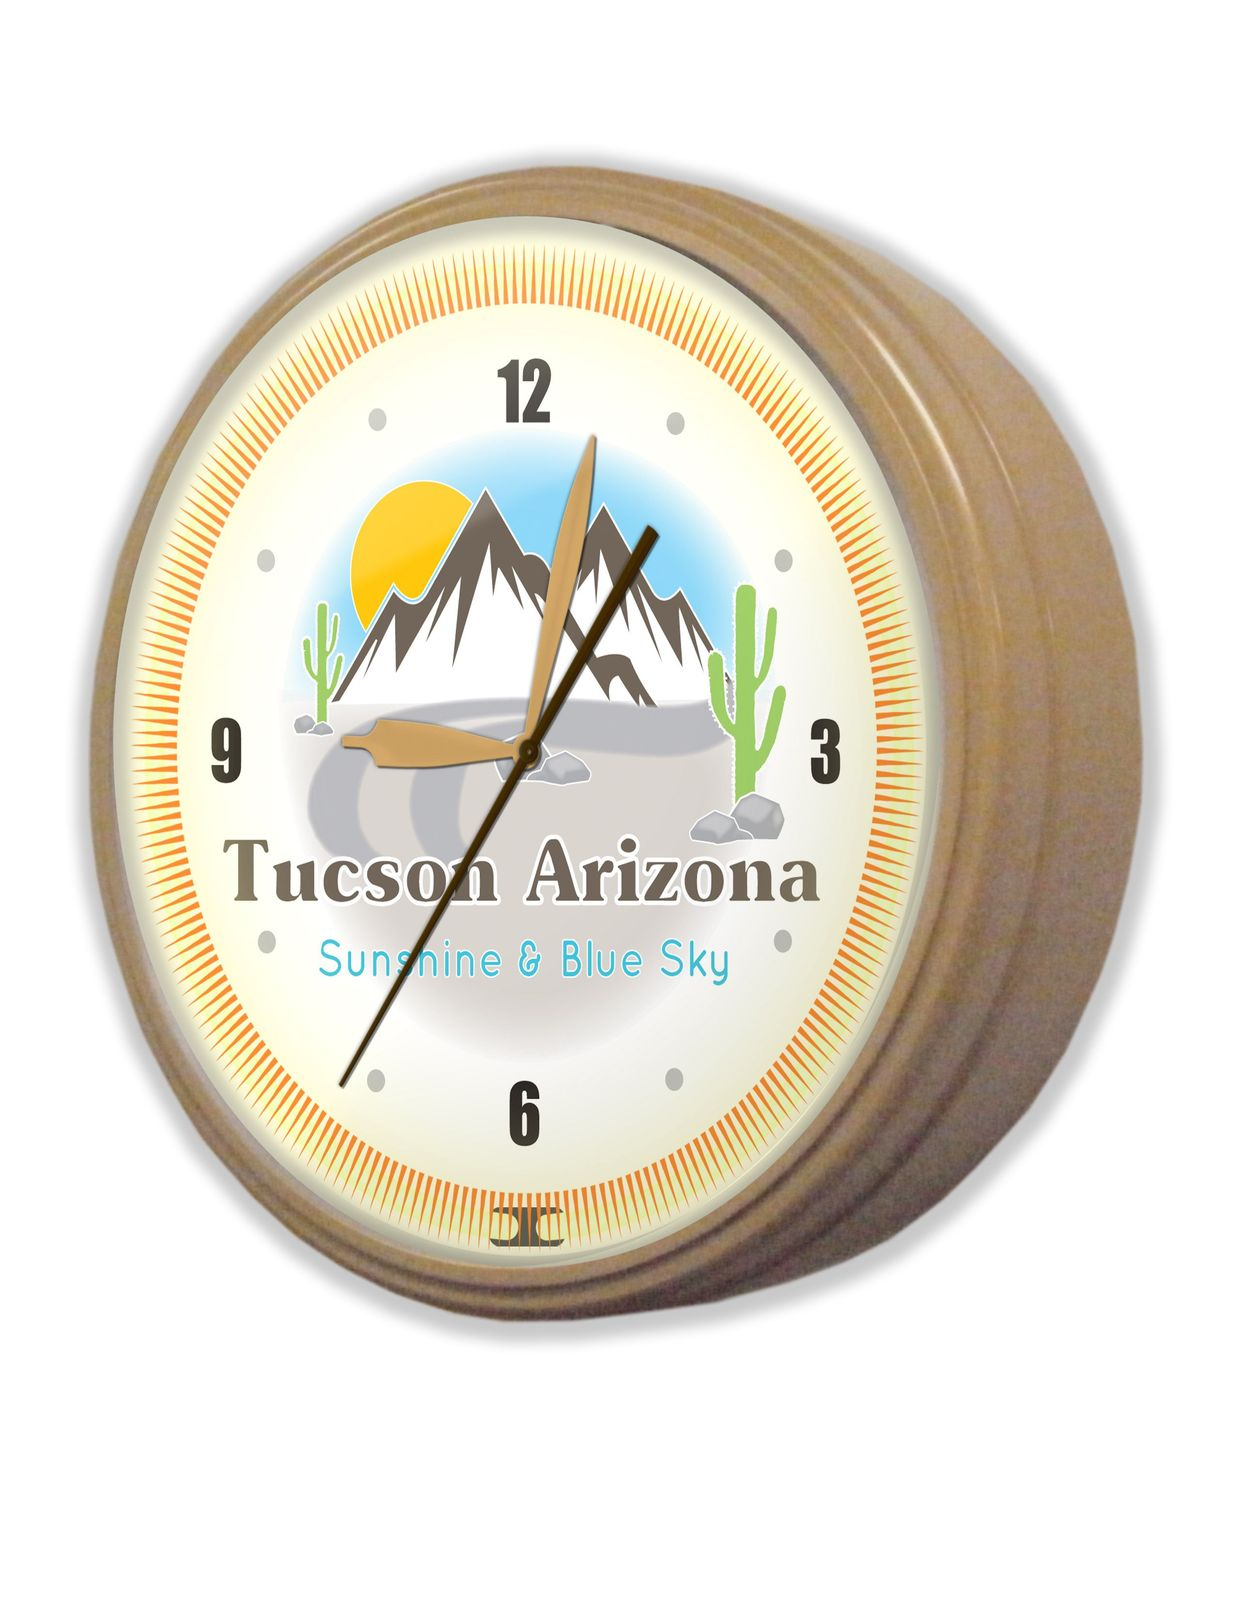 Summary Tucson Gun Show is happening from 12 January , Saturday to 13 January , Sunday at Pima County Fairgrounds in Tucson, AZ. The organizer of the event is Crossroads of the West Gun Shows. The event is open to public. The frequency of Tucson Gun Show is several times a year.